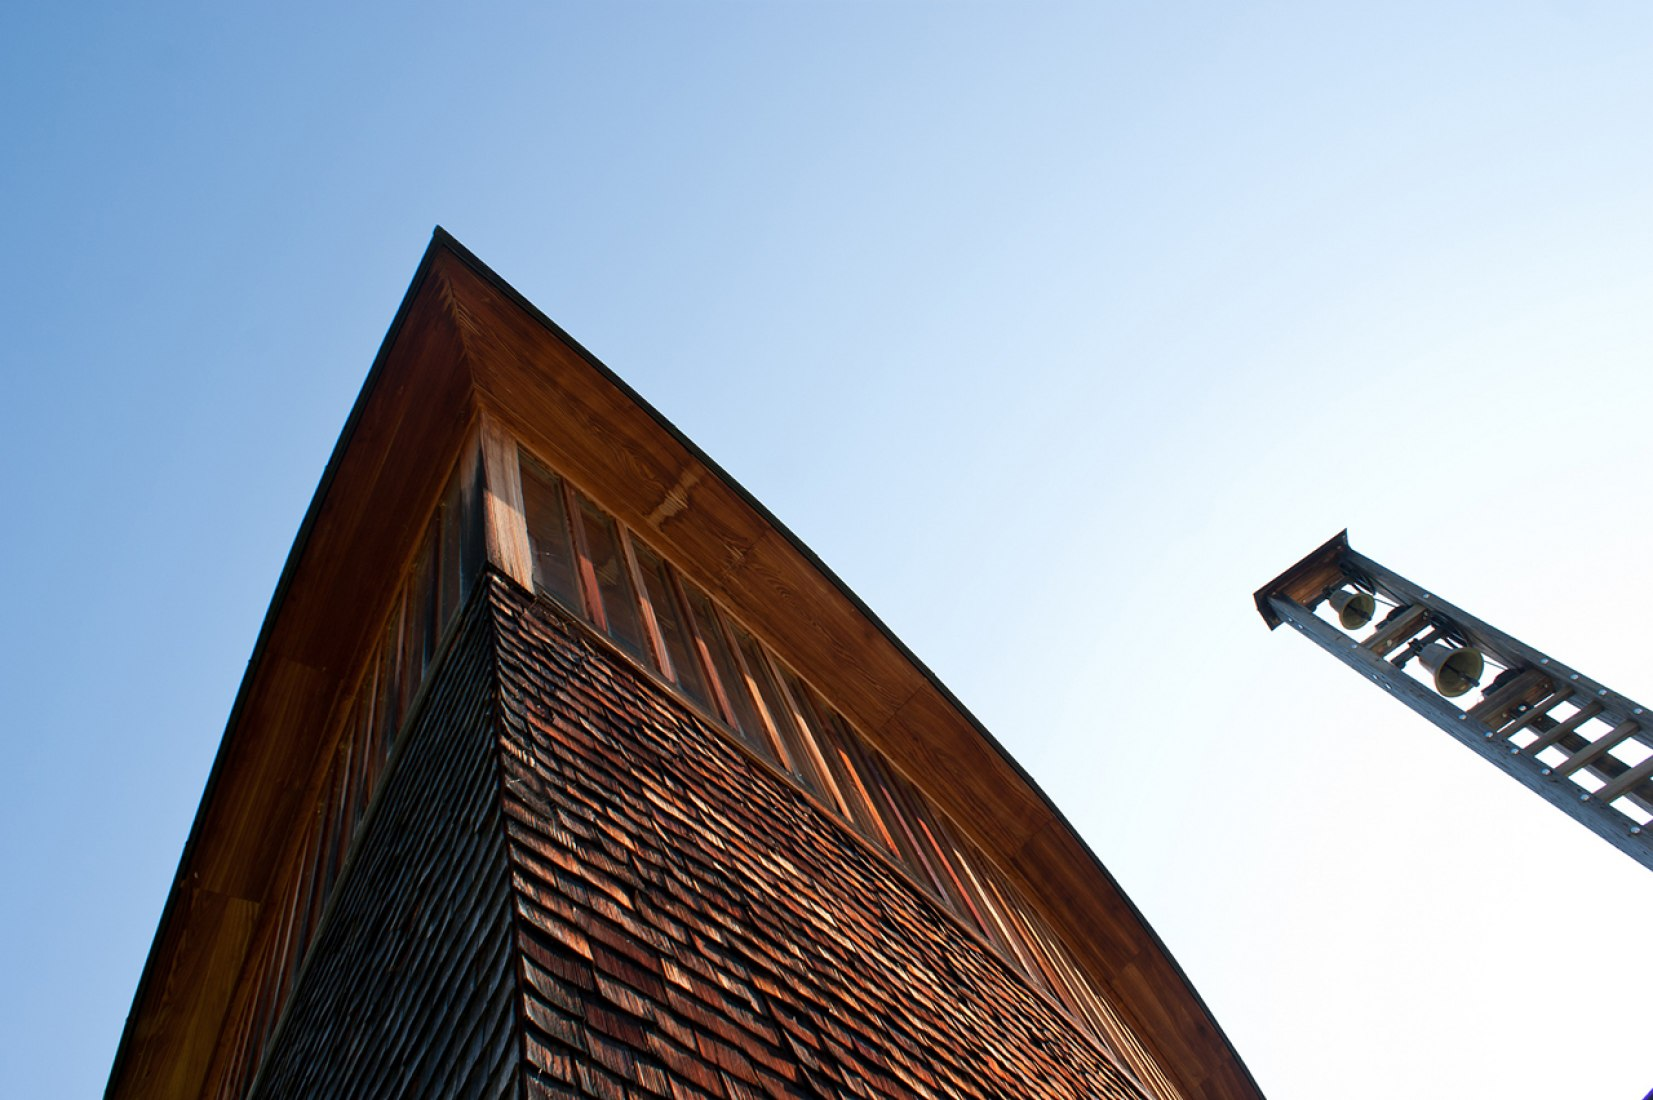 Outside view of Saint Benedict Chapel by Peter Zumthor. Photograph © Felipe Camus.